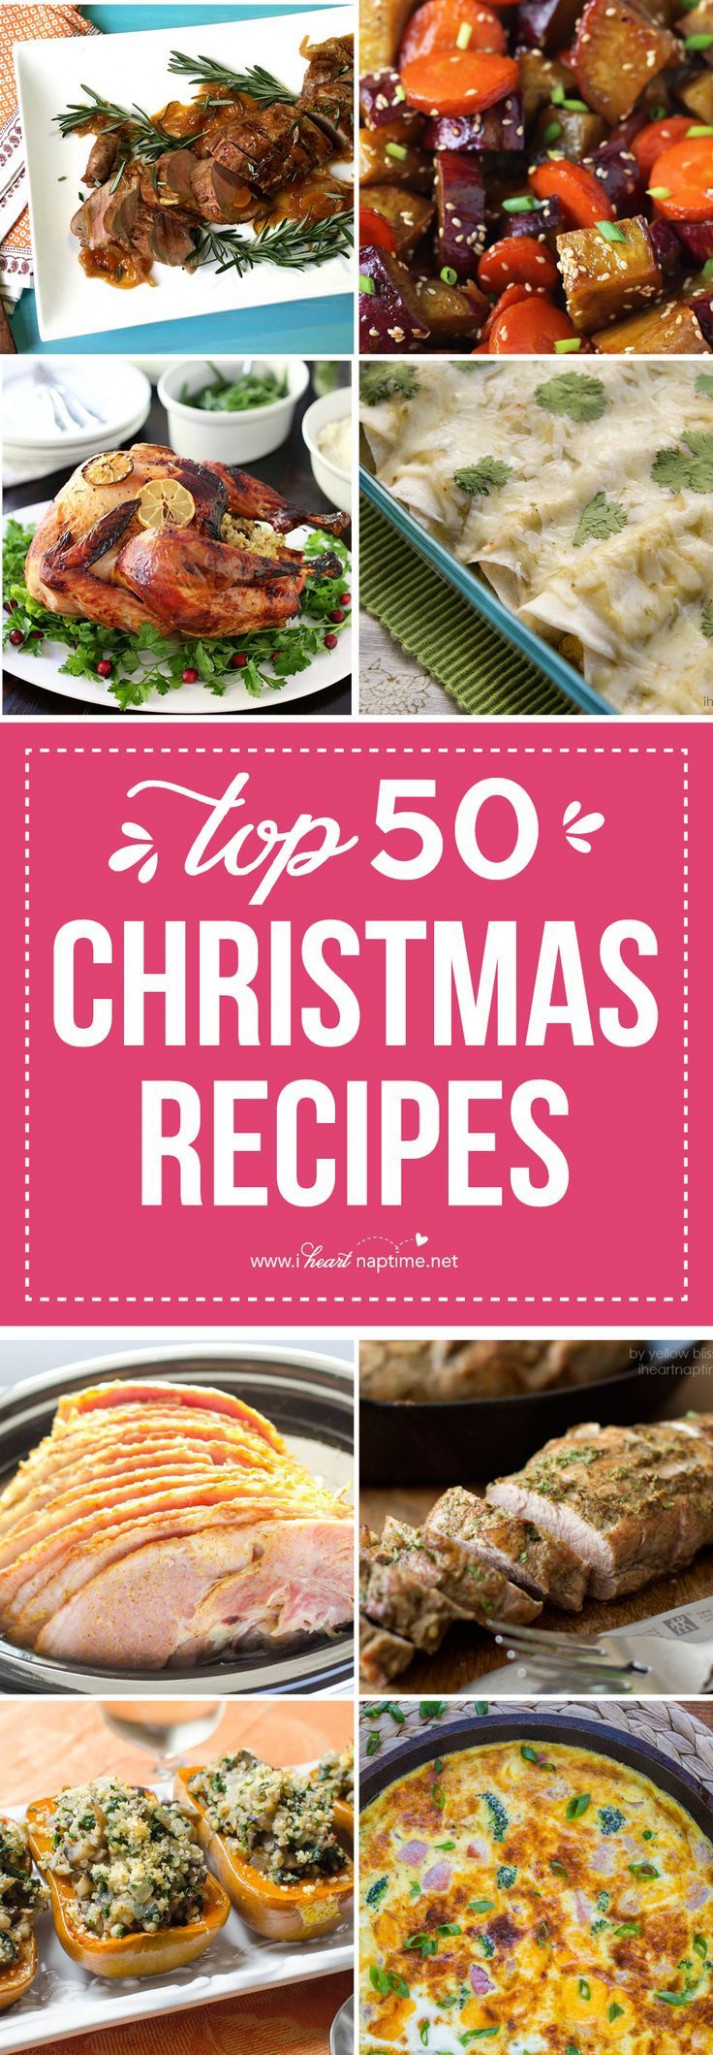 Best 25+ New recipes ideas on Pinterest | Chicken dishes ..